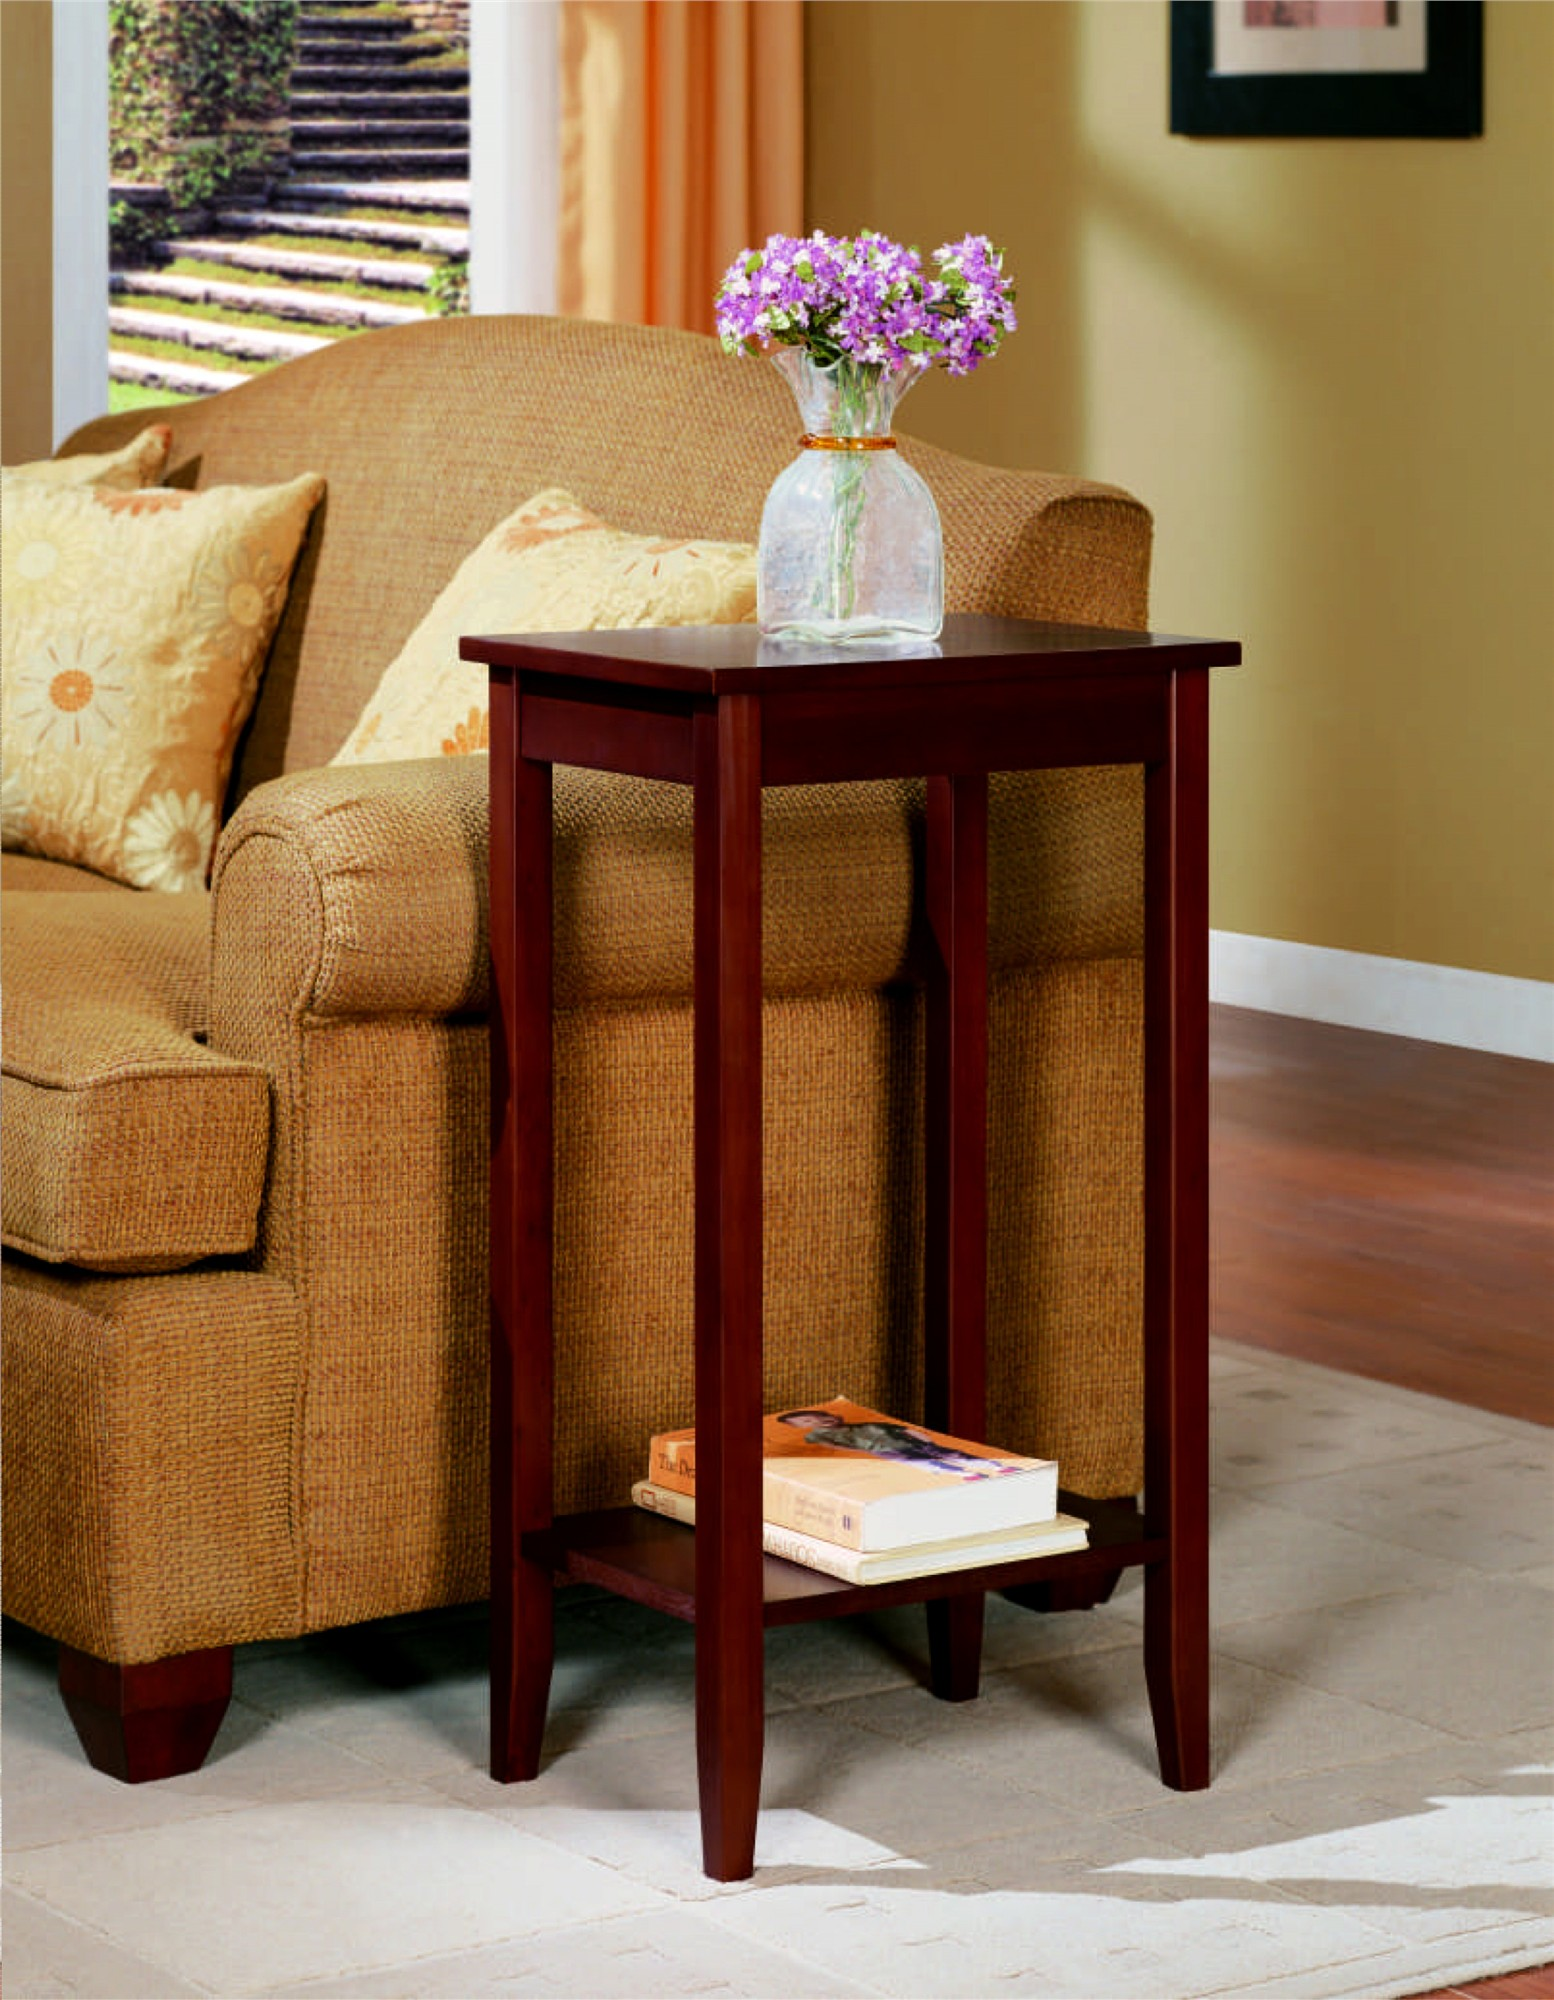 rosewood tall end table dhp furniture accent tables living room rattan side covers long computer desk tiffany style coca cola hanging lamp outdoor cushions slim glass console